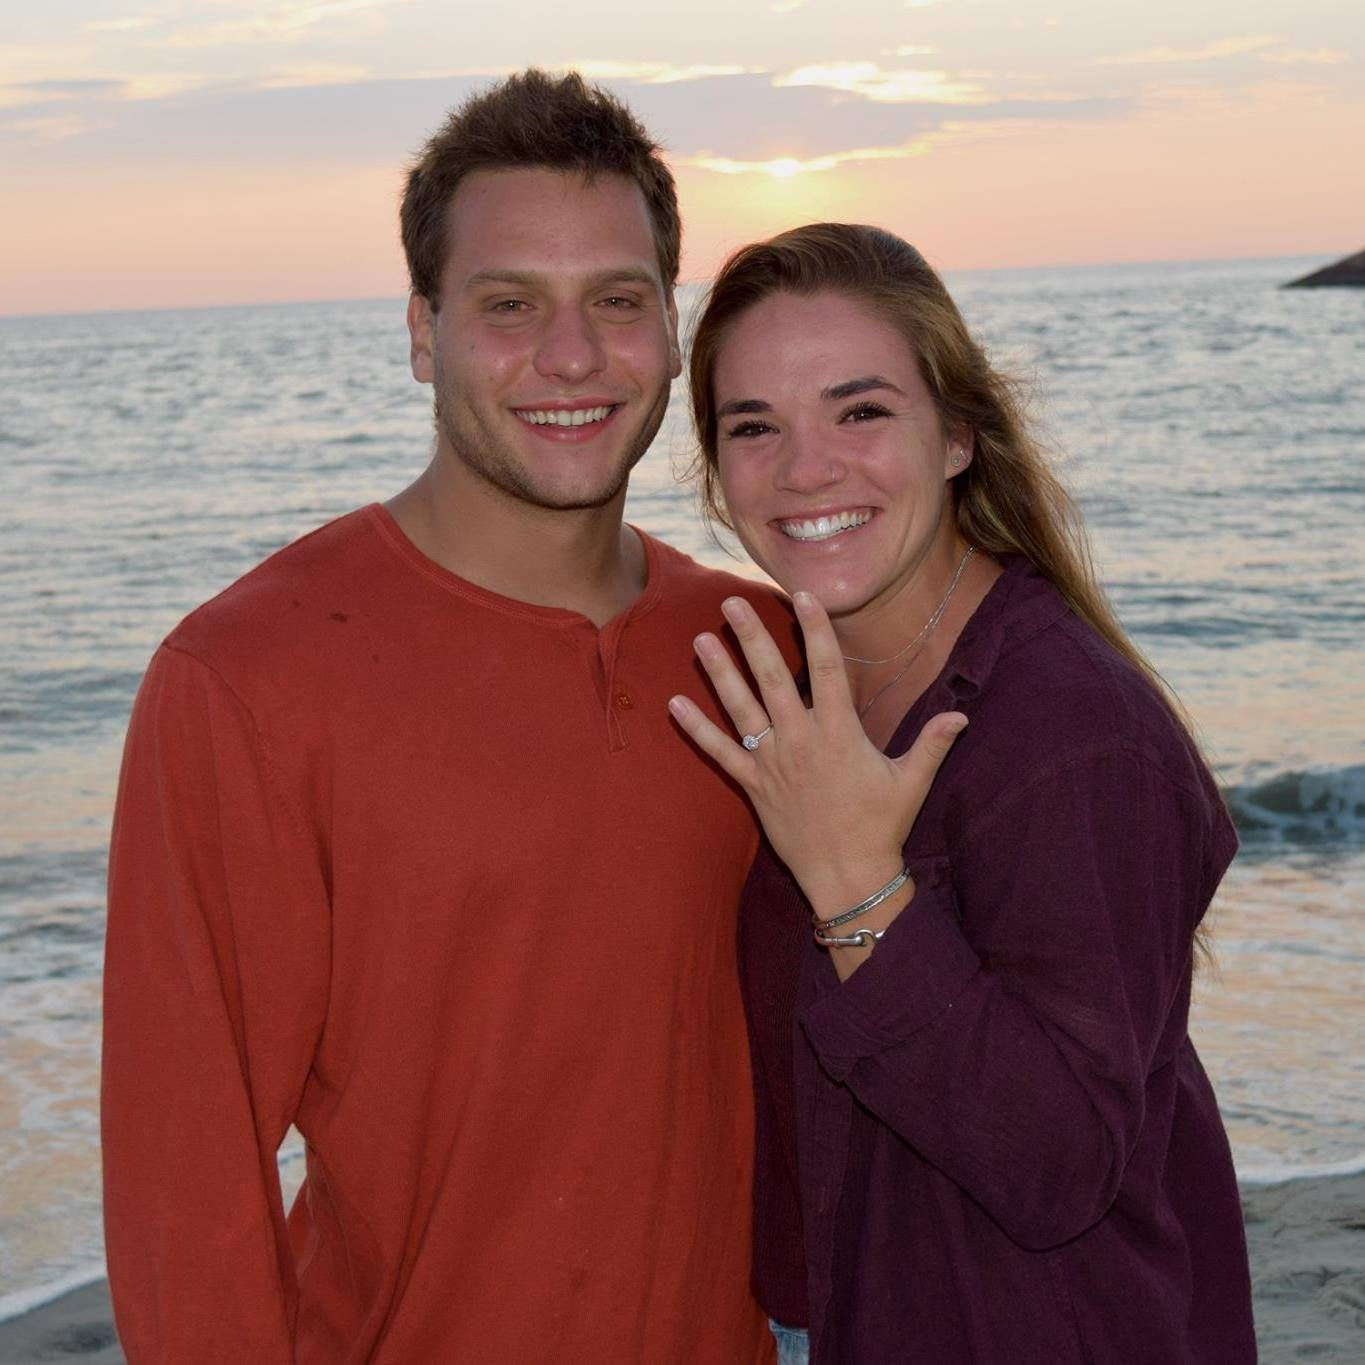 And Coach Damian is off to California to marry Haley on August 11th! Want to send them a message? Click  here !